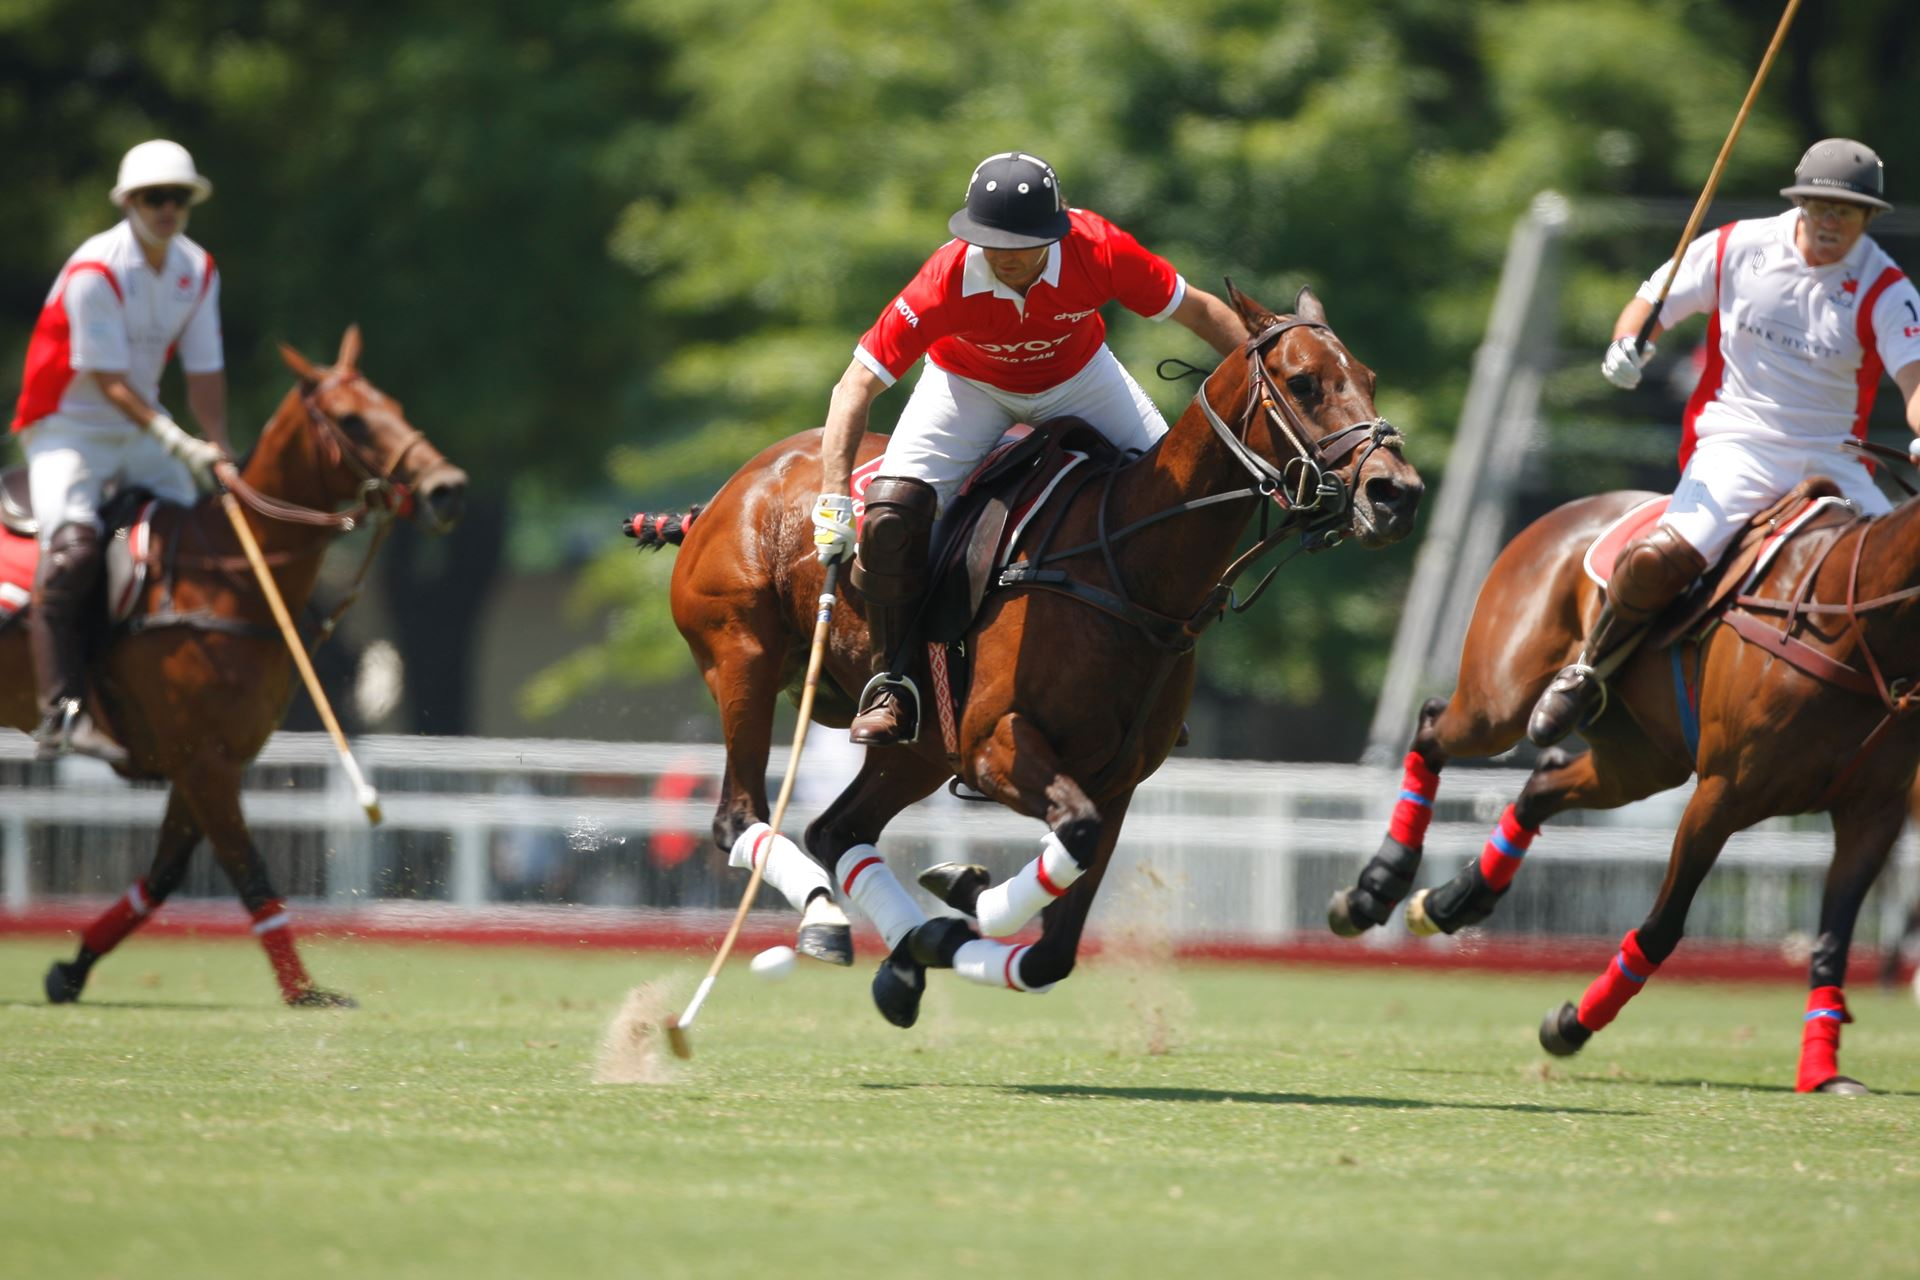 What You Should Know About Polo